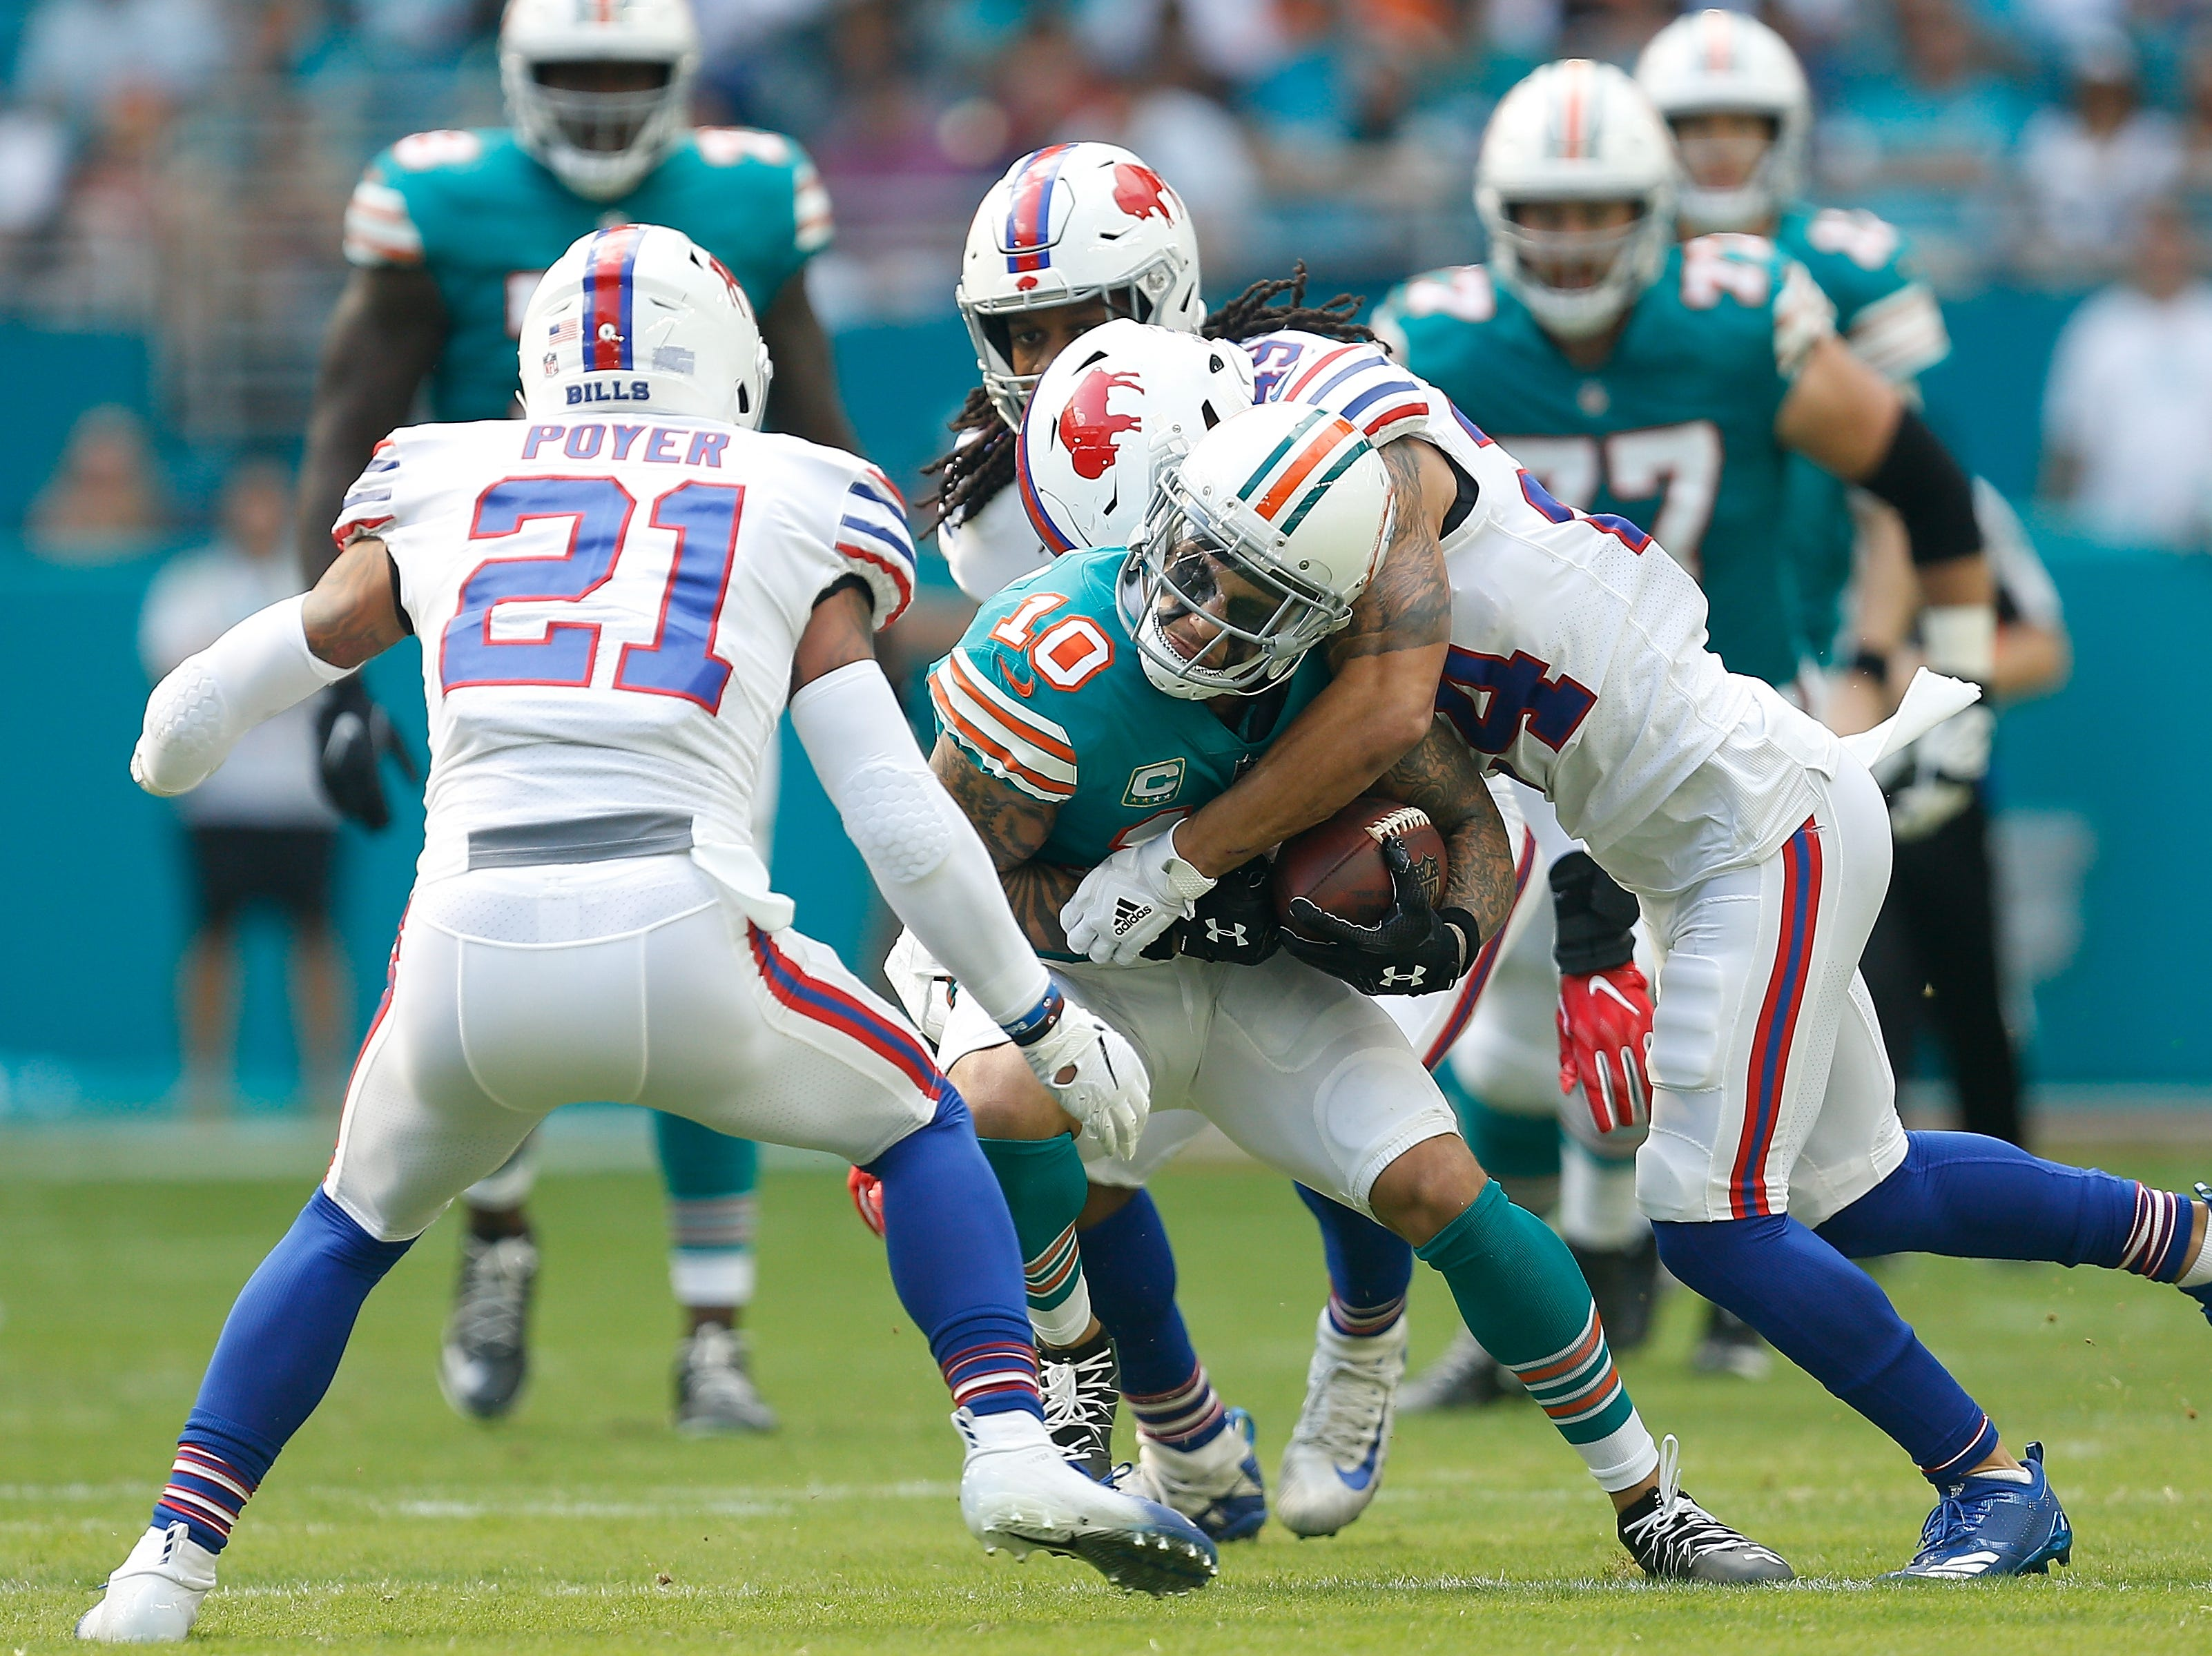 MIAMI, FL - DECEMBER 02: Kenny Stills #10 of the Miami Dolphins runs for extra yards after the catch during the first half against the Buffalo Bills at Hard Rock Stadium on December 2, 2018 in Miami, Florida.  (Photo by Michael Reaves/Getty Images)